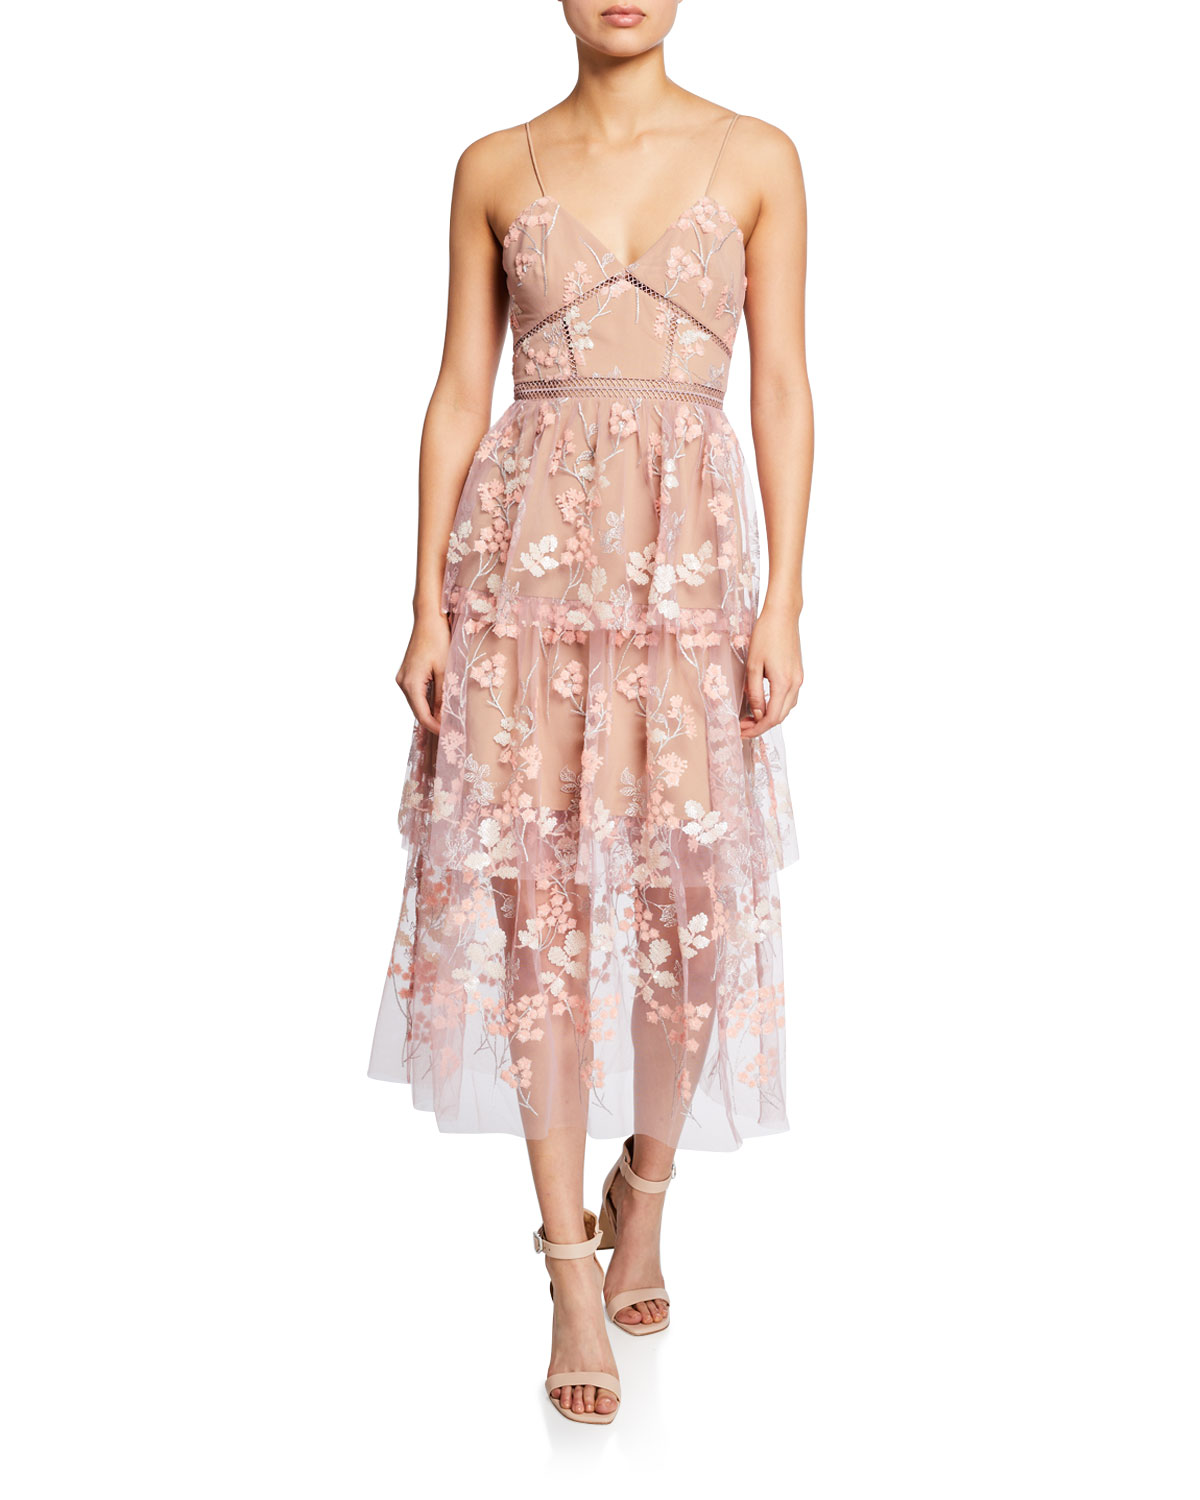 3385ede6bf4f Self-Portrait Floral-Embellished Tiered Midi Dress | Neiman Marcus